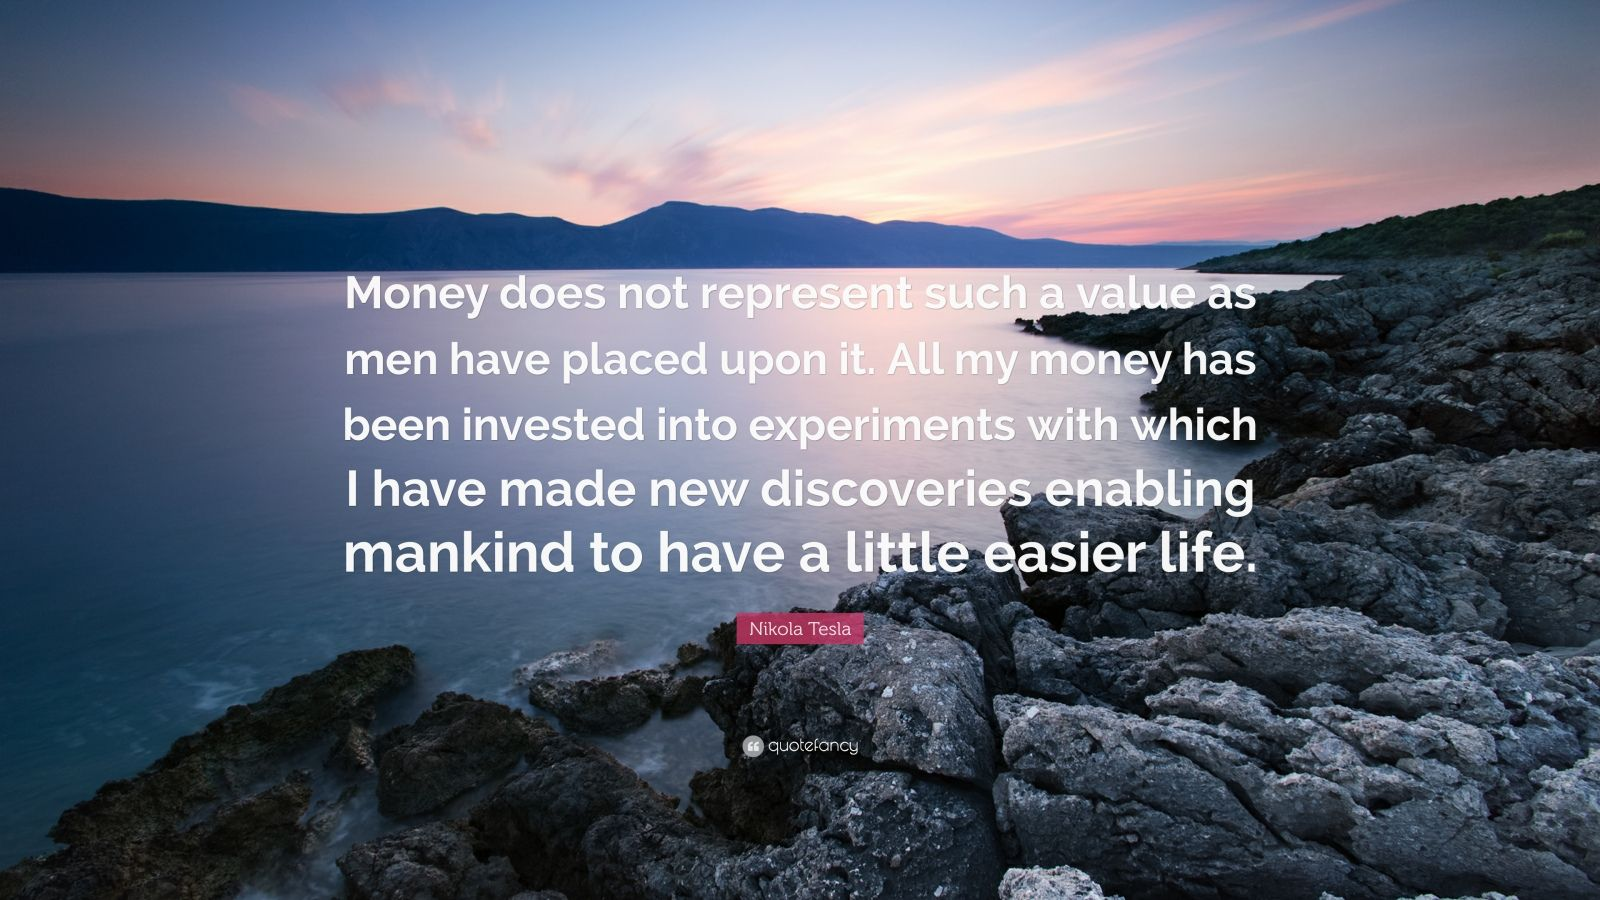 """Nikola Tesla Quote: """"Money does not represent such a value as men have placed upon it. All my money has been invested into experiments with which I have made new discoveries enabling mankind to have a little easier life."""""""